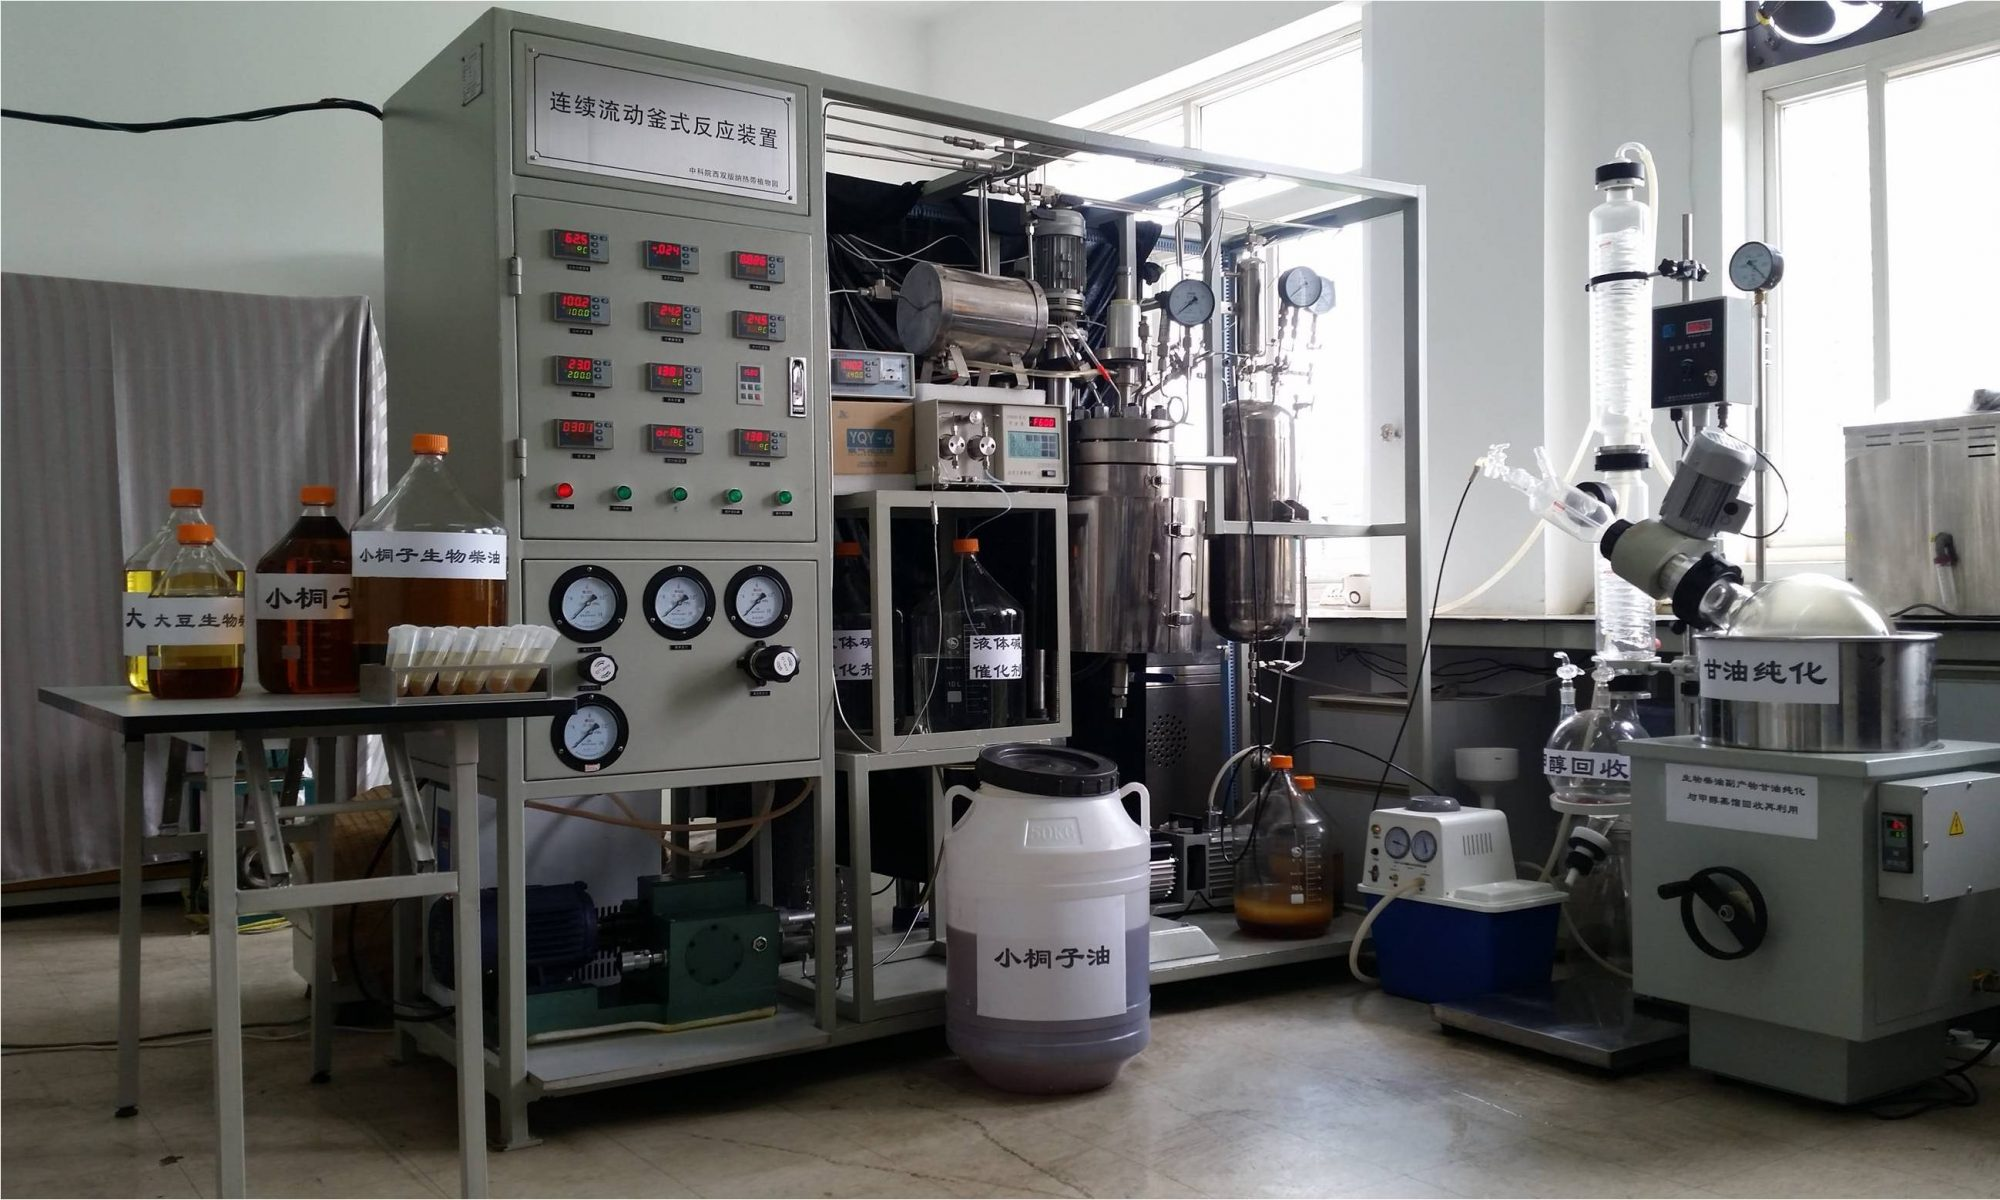 Biomass Group, Nanjing Agricultural University